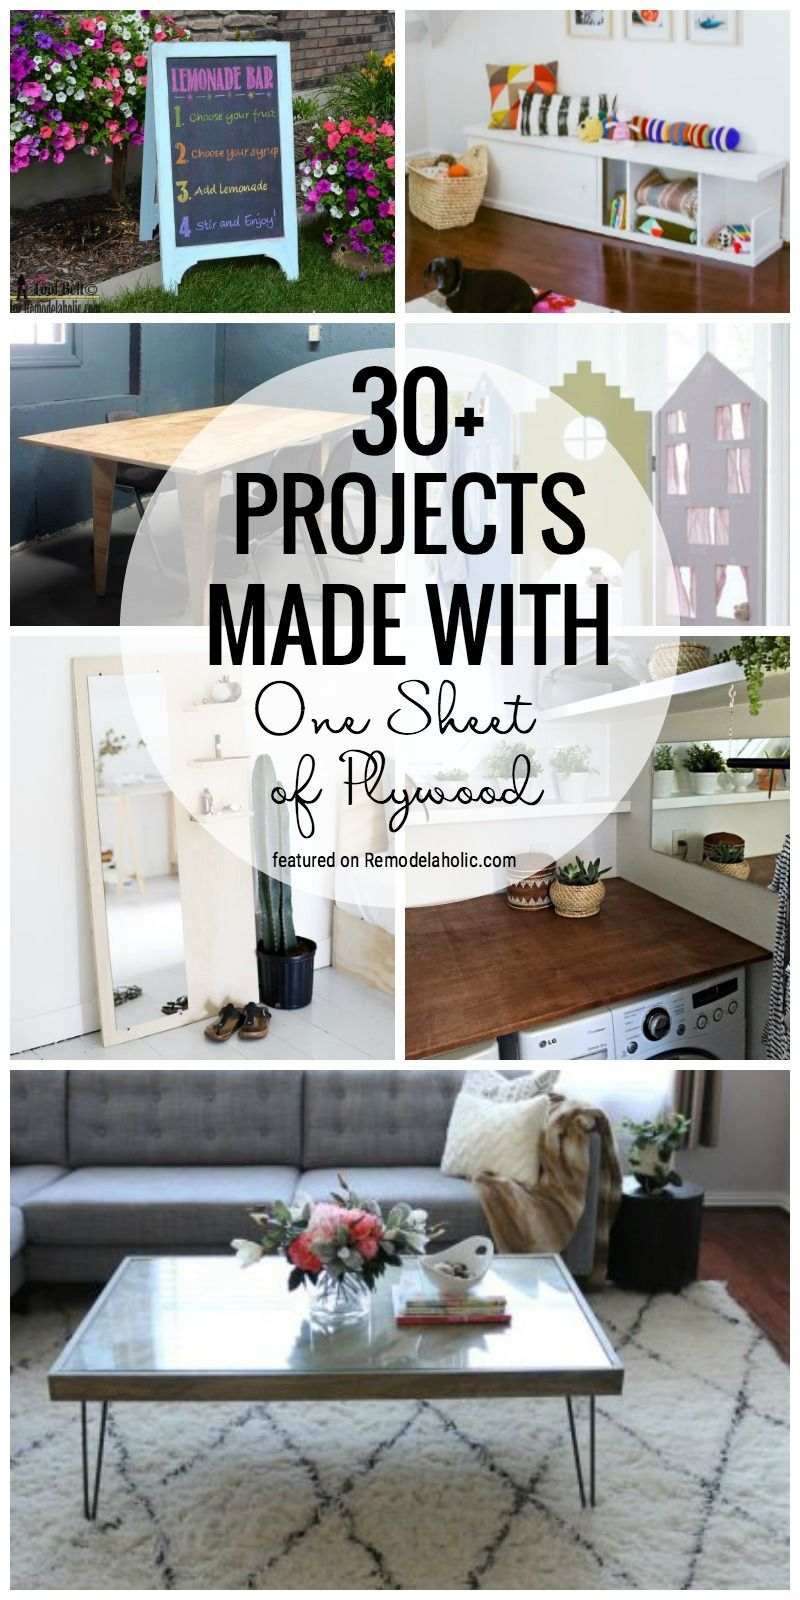 Grab A Sheet Of Plywood To Make One Of These Fabulous Projects 30 Projects Made With One Easy Woodworking Projects Plywood Projects Woodworking Projects Diy